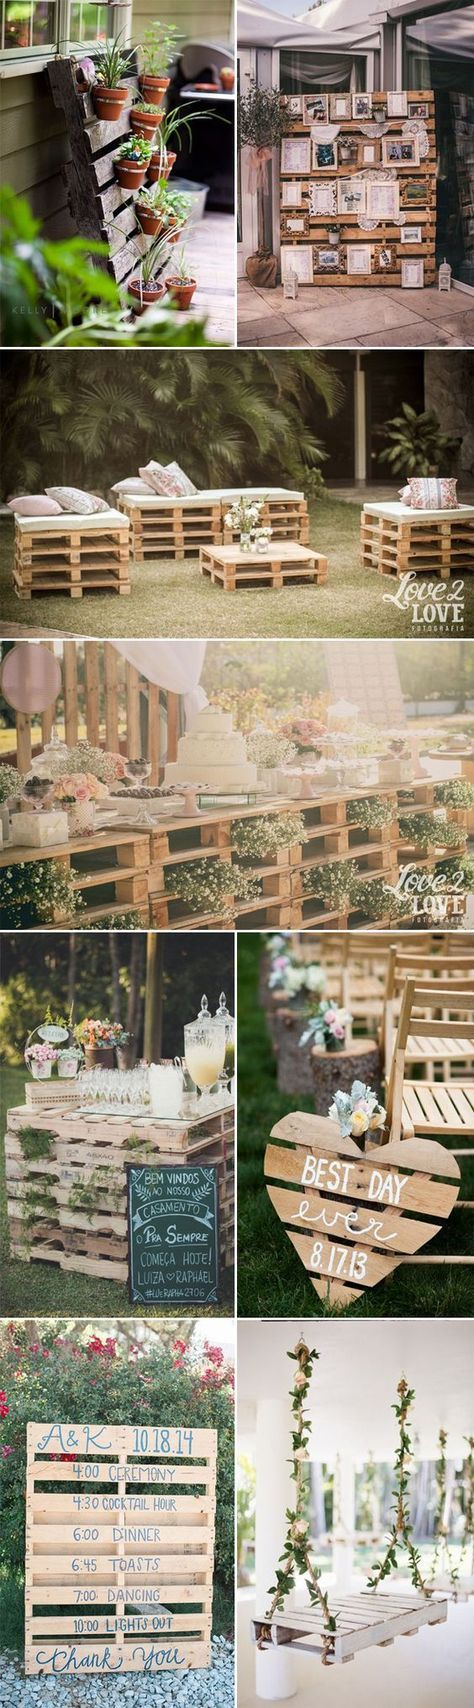 Wedding decorations made with cricut october 2018  best Mariage  RÉCEPTION images on Pinterest  Wedding ideas